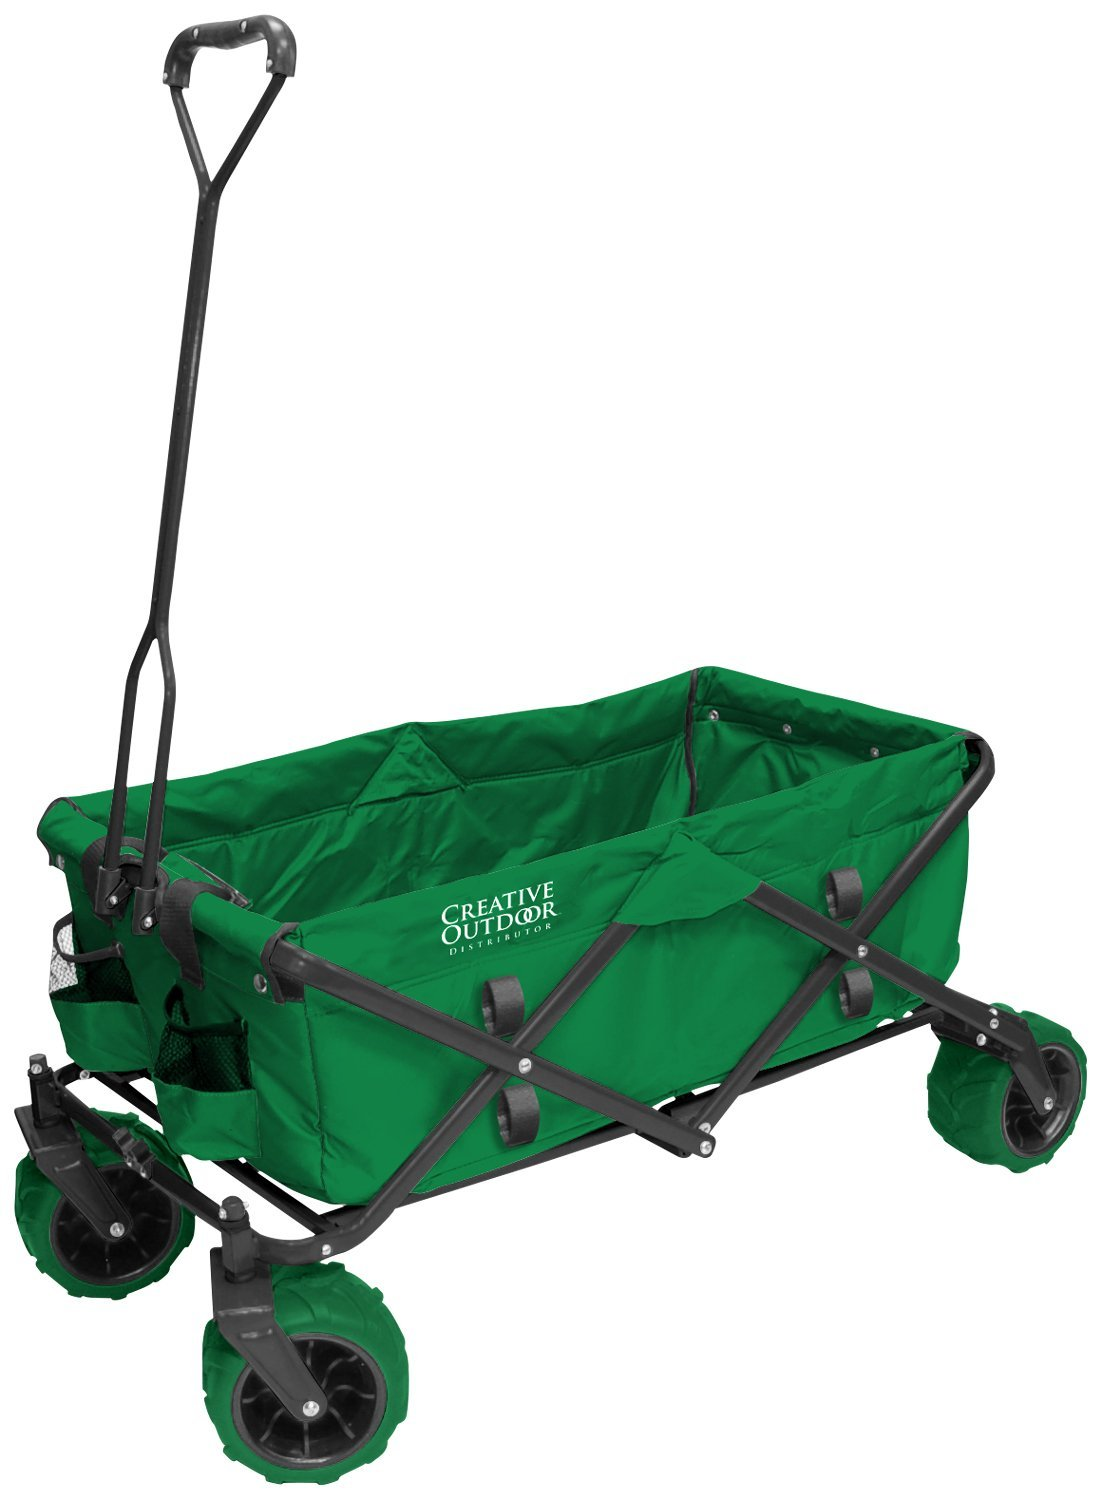 John Deere 21 Utility Cart Price Decor Ideasdecor Ideas